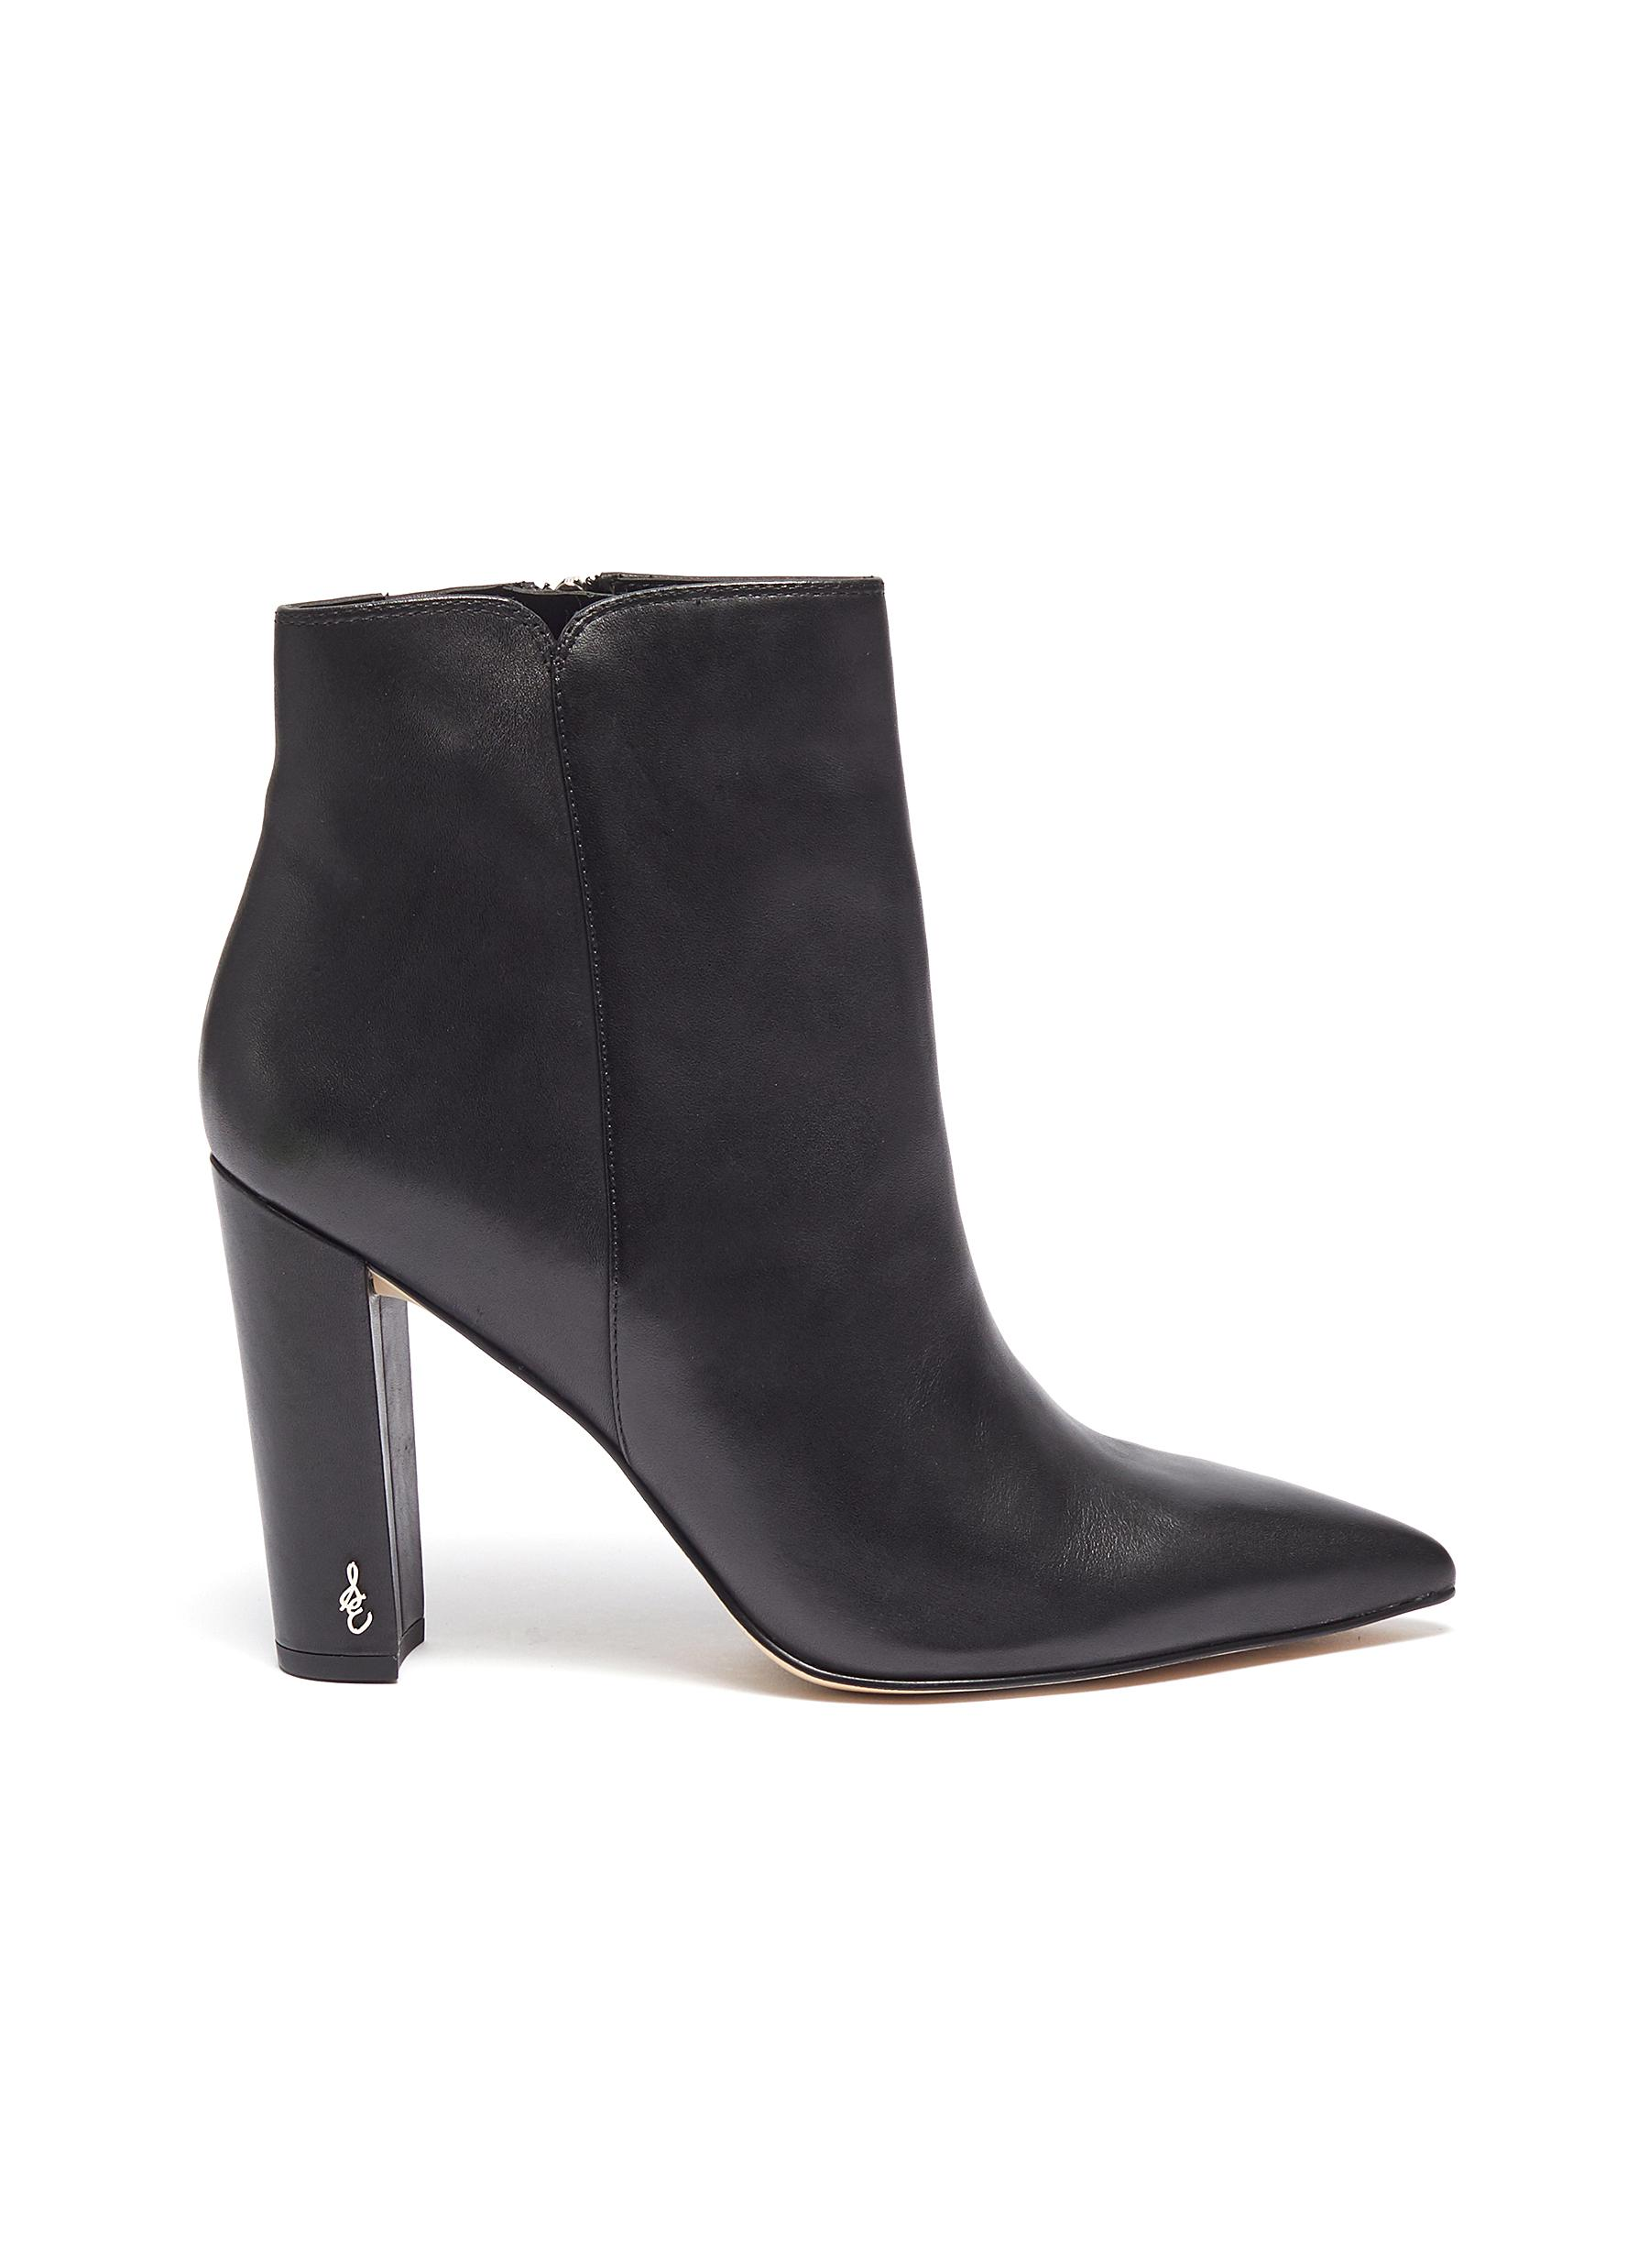 Raelle leather ankle boots by Sam Edelman